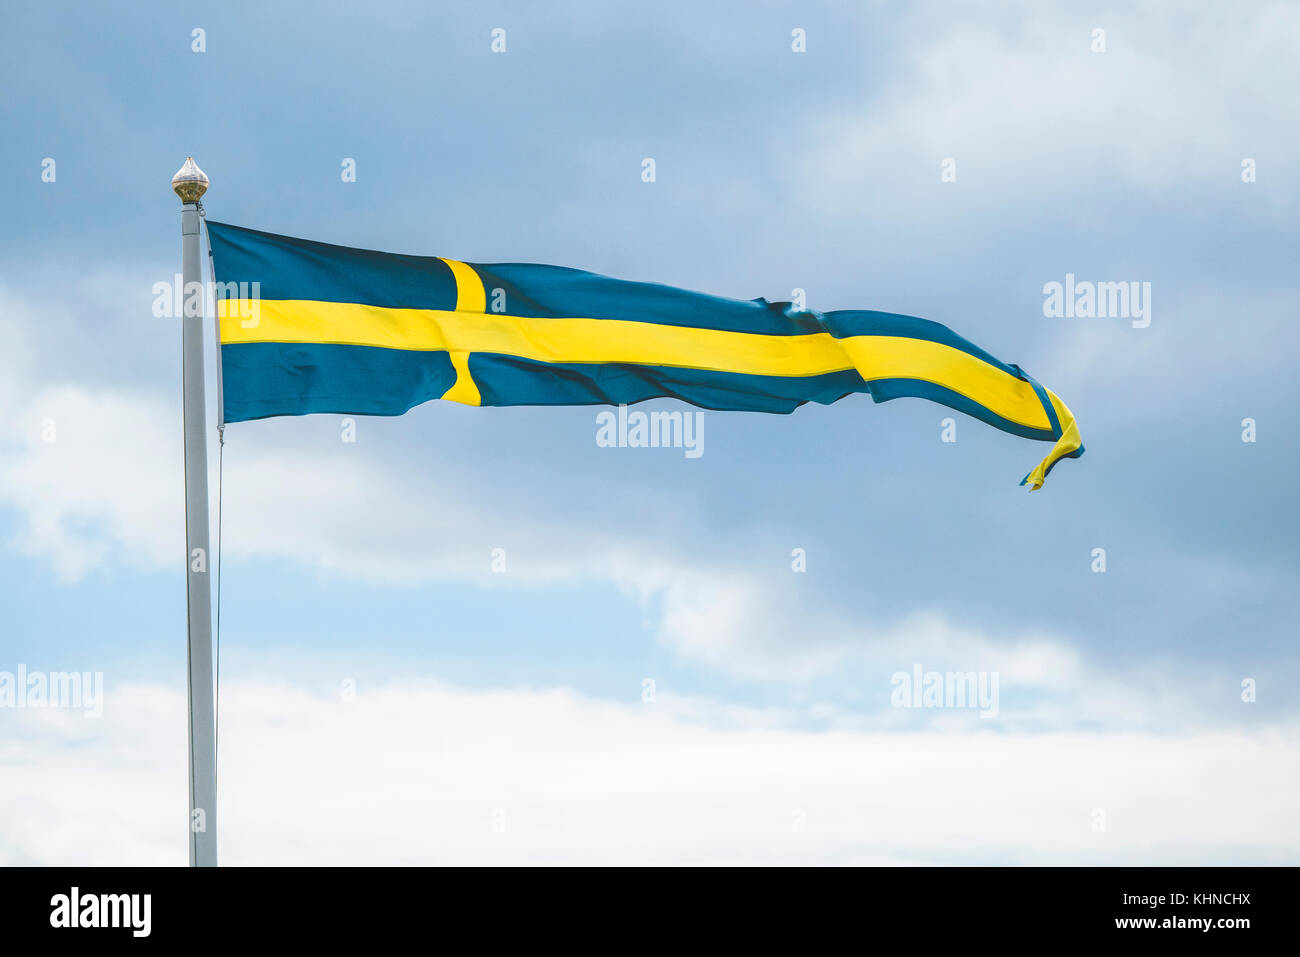 Swedish pennant flag on a flagpole in the wind in blue and yellow colors in cloudy weather - Stock Image